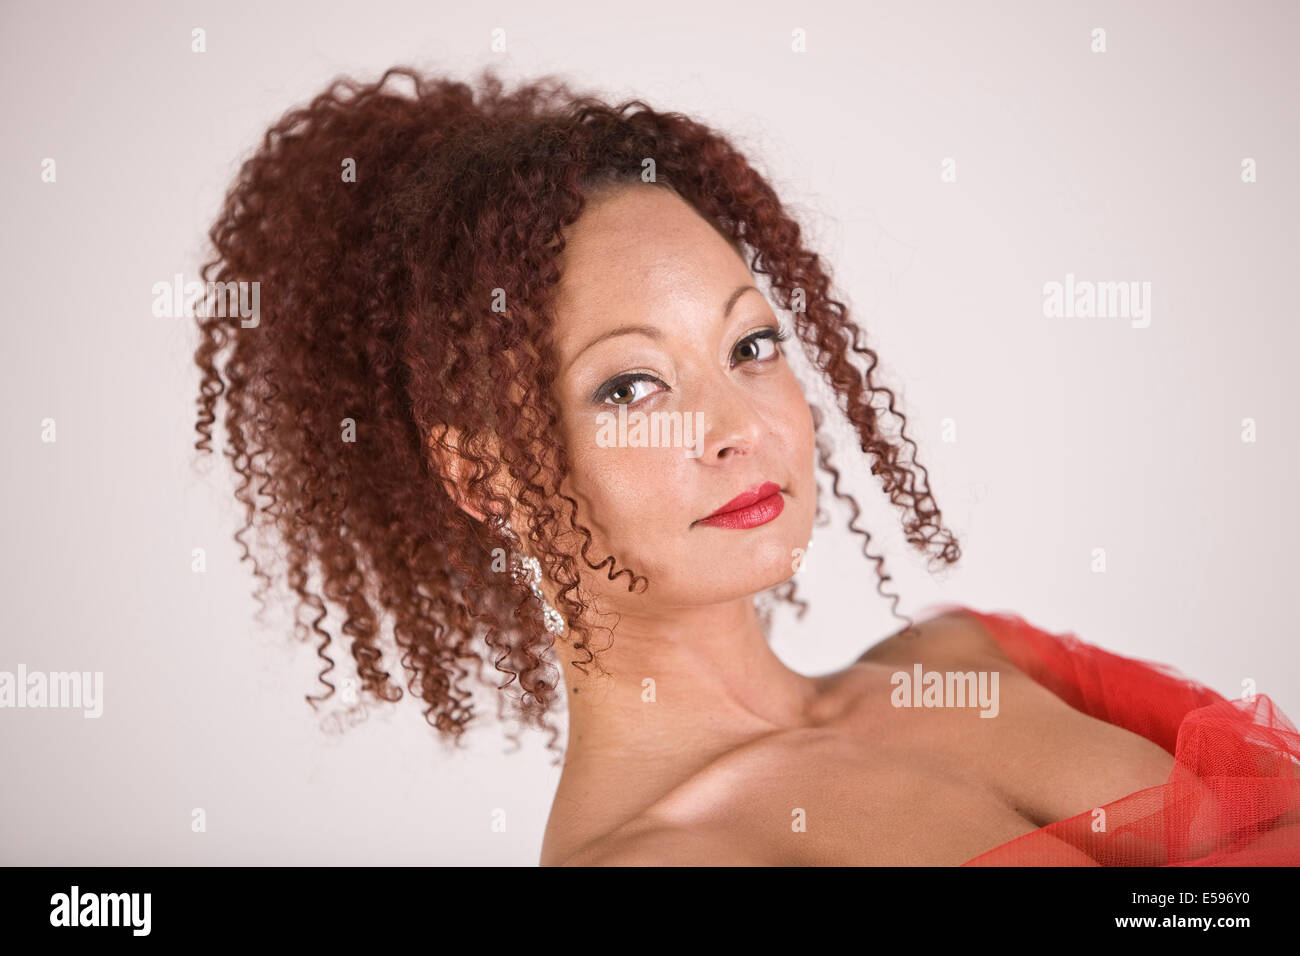 Lady with curly hair tied up showing her neck and shoulders - Stock Image